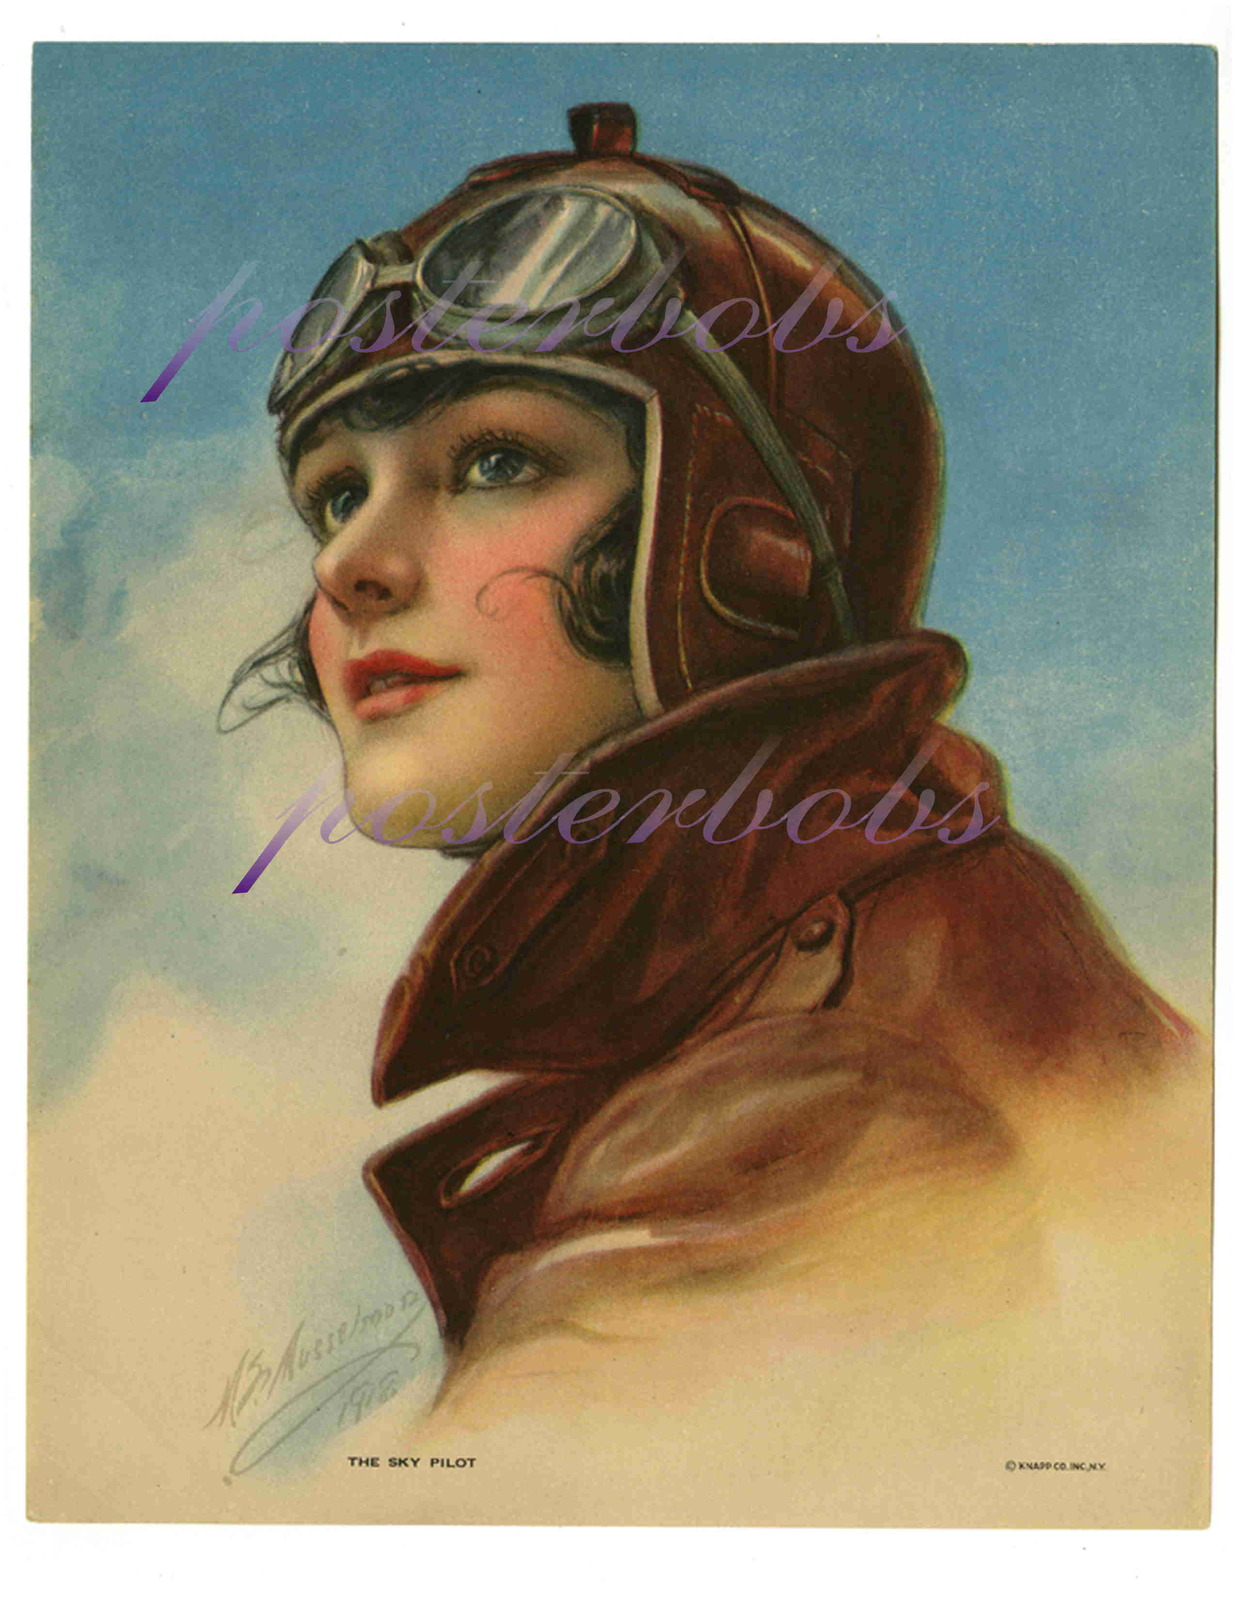 The Sky Pilot: 17 x 22 inch Vintage Aviatrix  Canvas Giclee Print Pin-Up